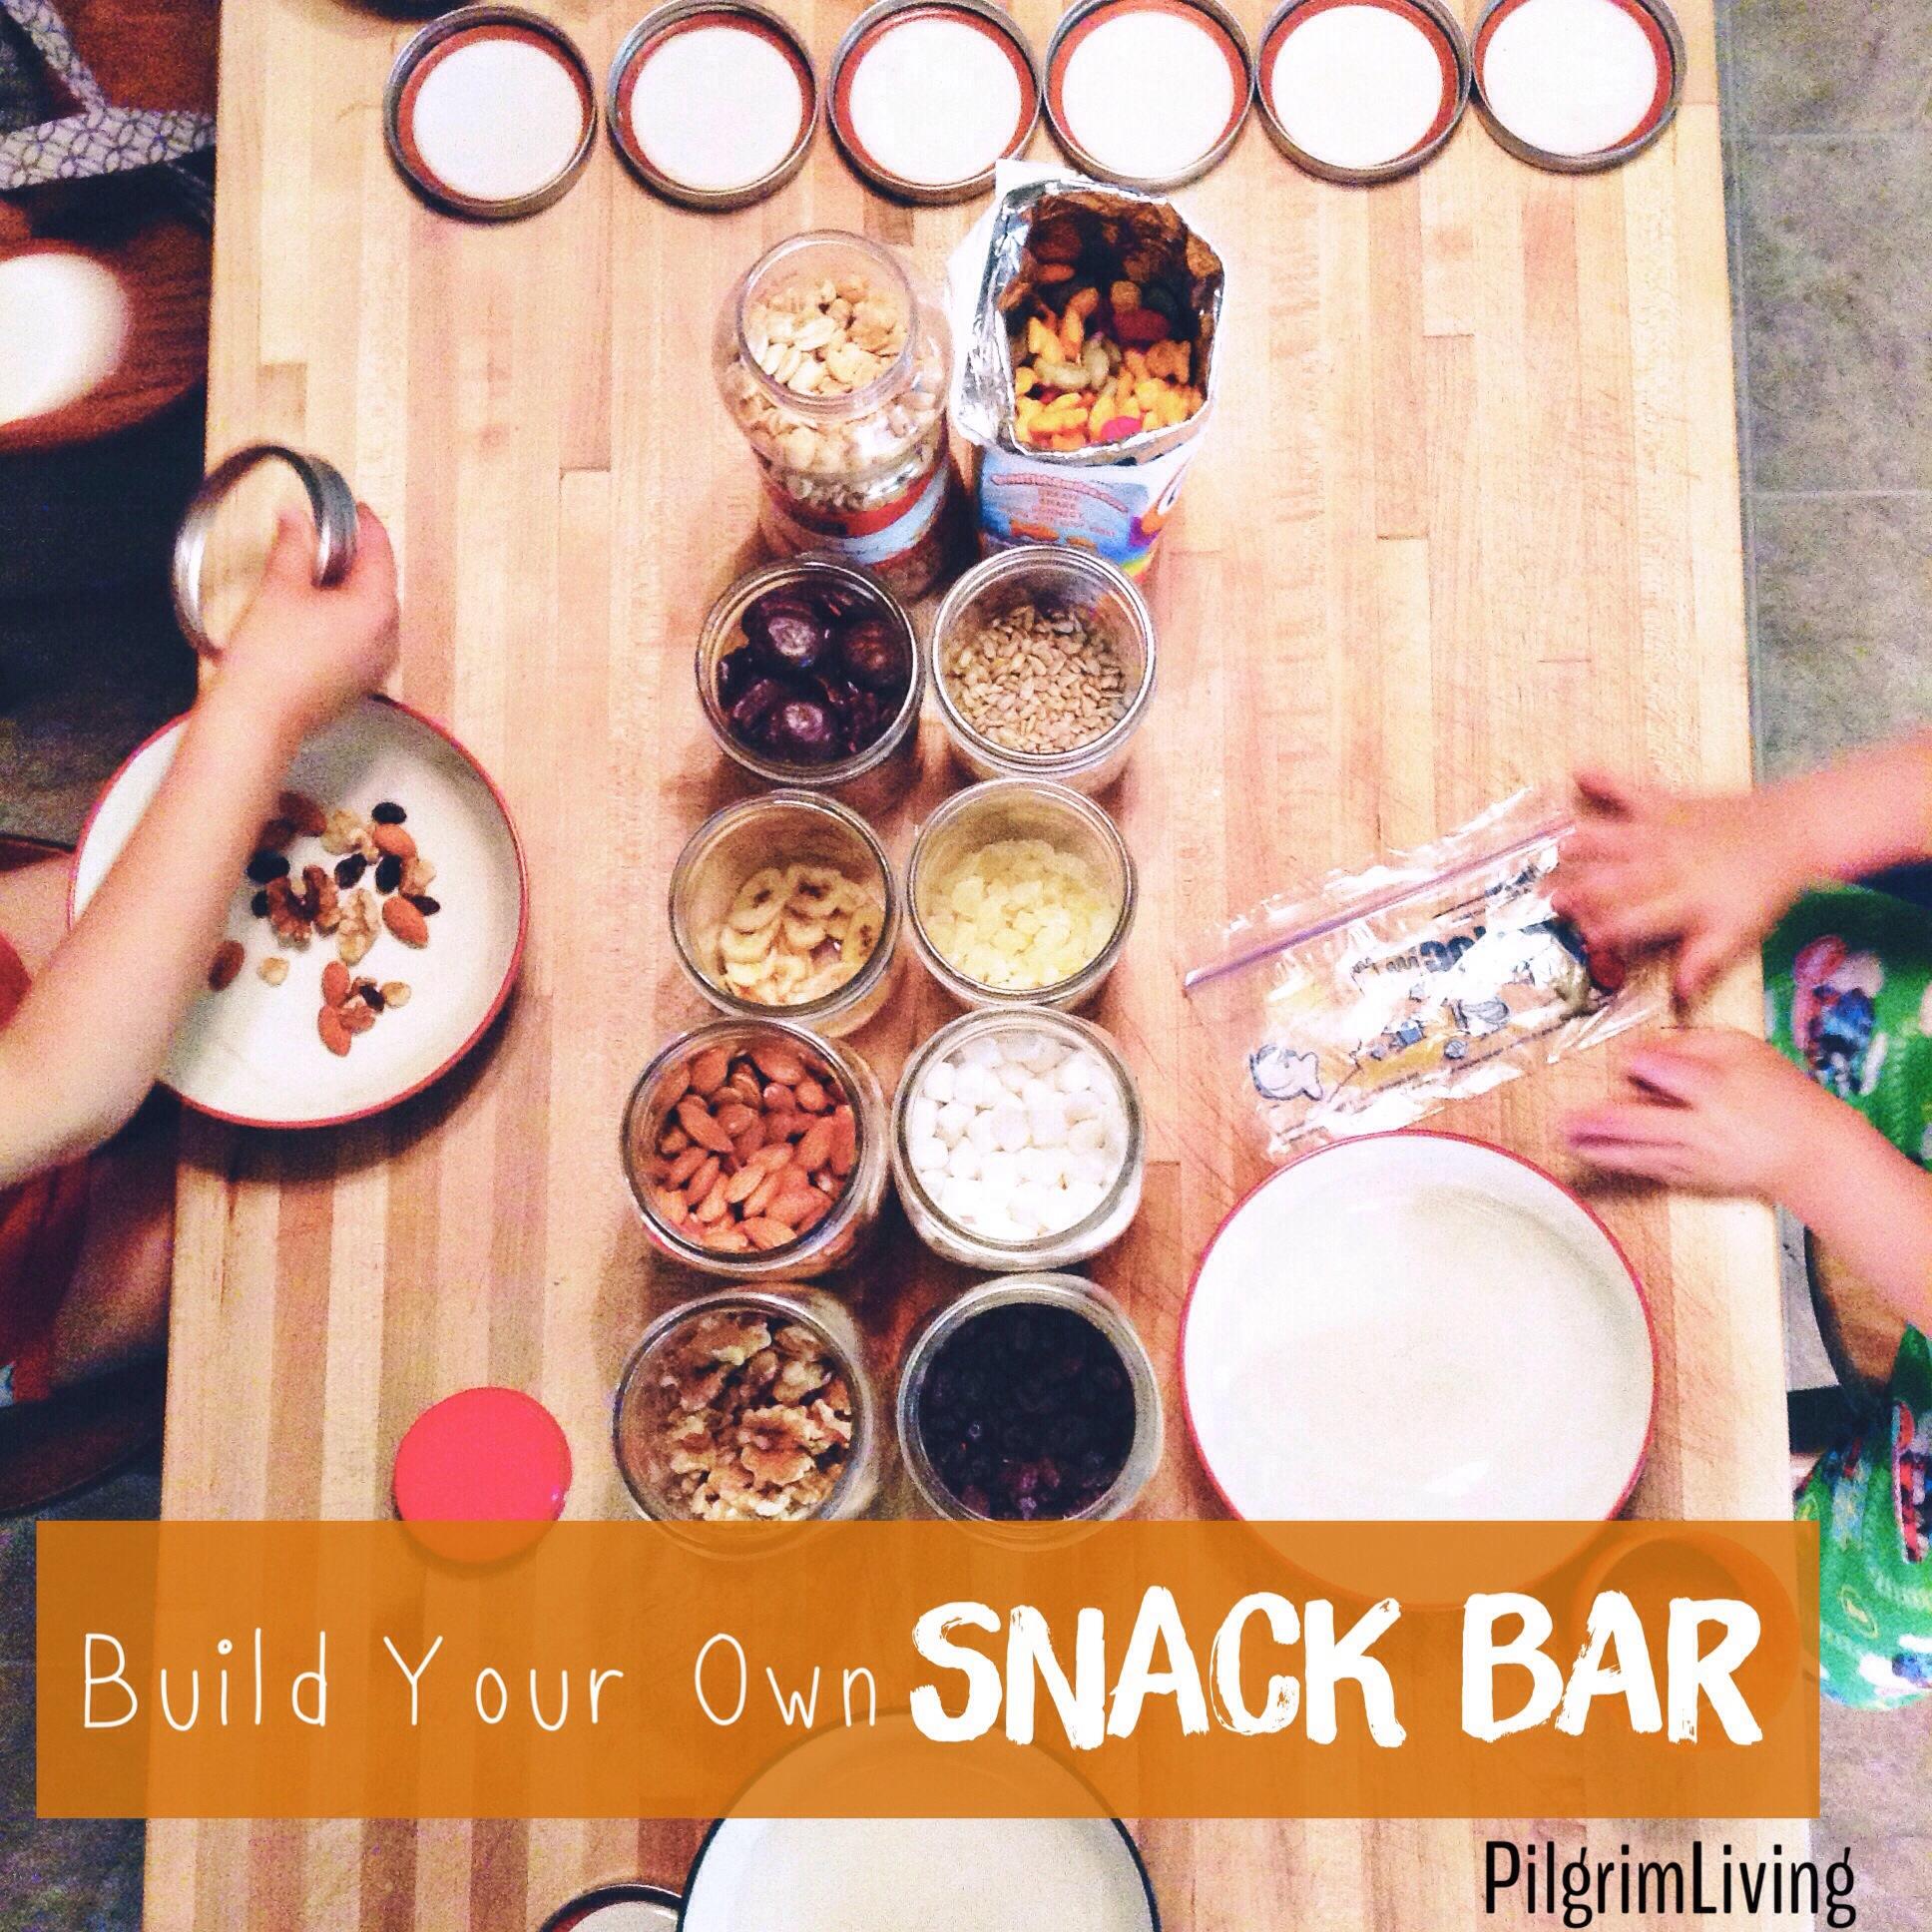 Fun and Healthy On-the-Road Snacking